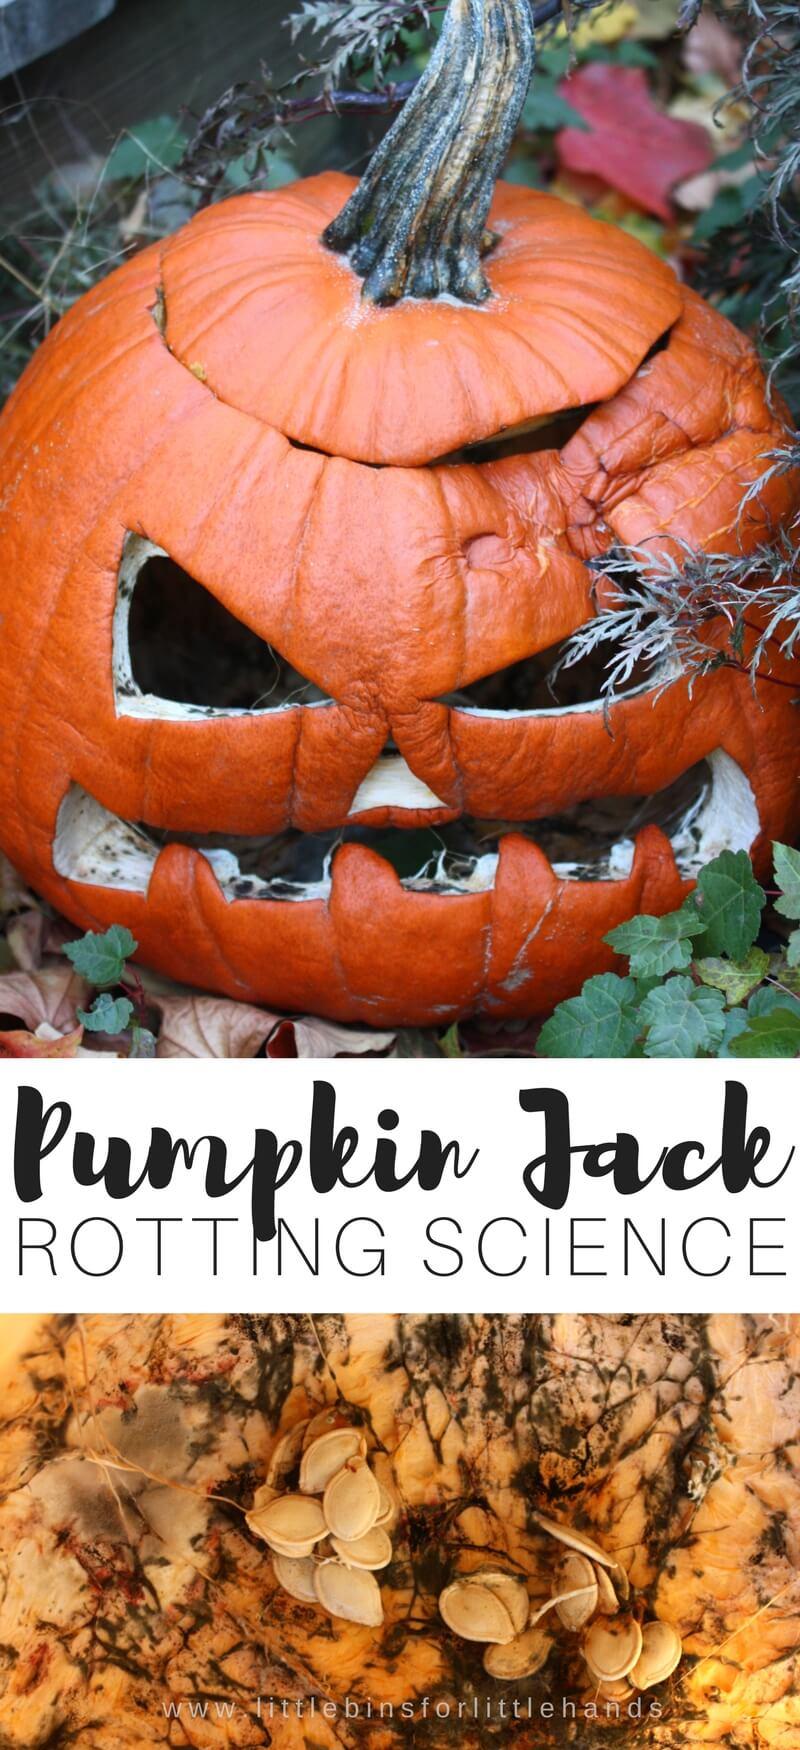 This fall check out the Pumpkin Jack book and try out this awesome kid science with a rotting science Pumpkin Jack activity! Check out mold up close at your Pumpkin Jack rots this fall season. Plant your own Pumpkin Jack and see what happens in the spring.